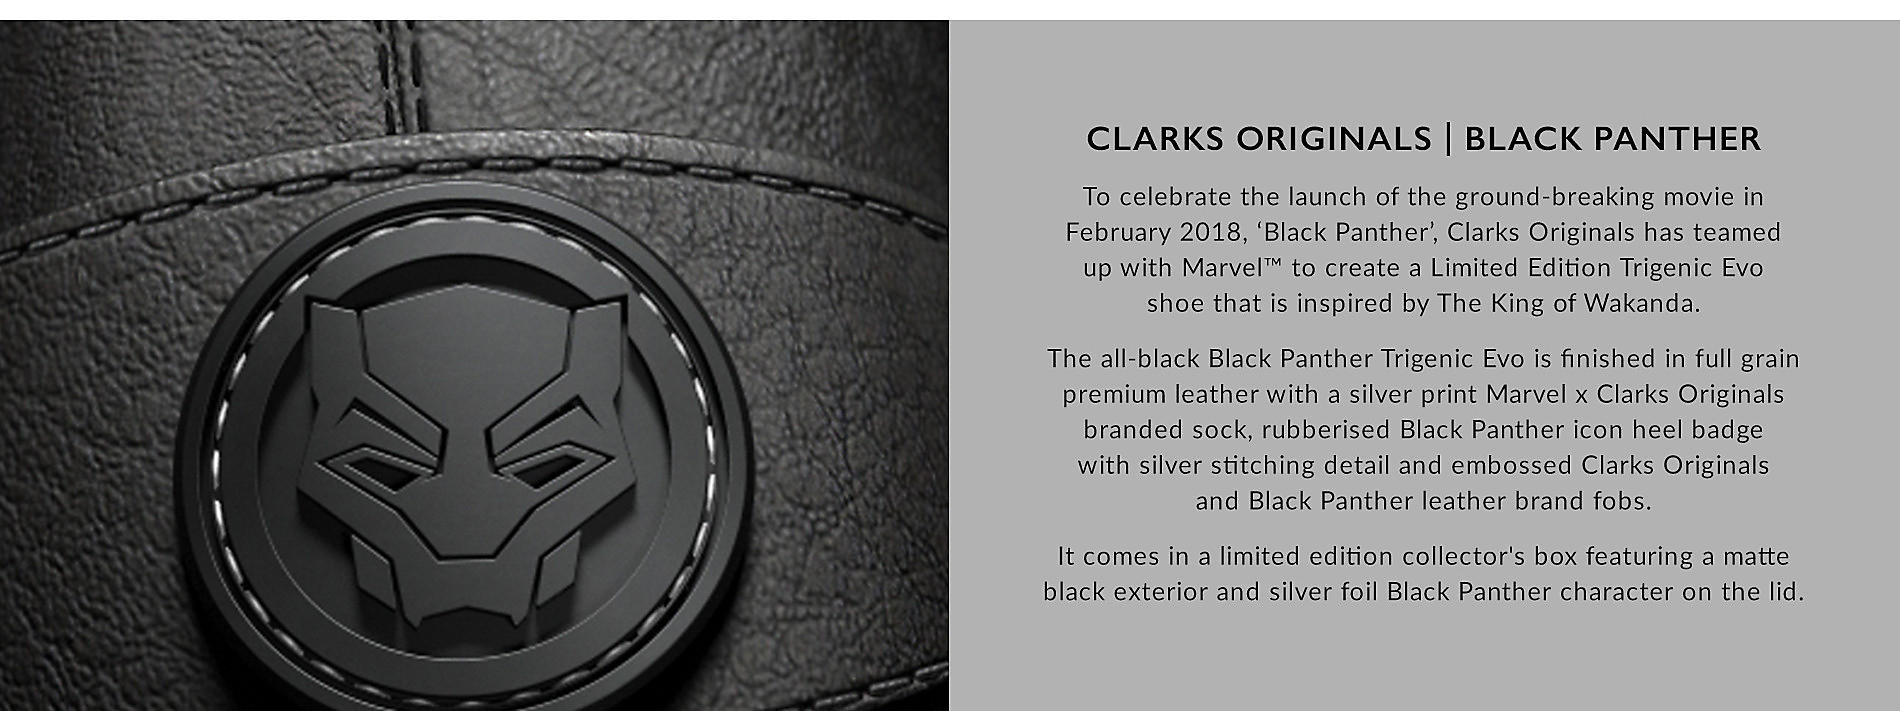 Clarks Originals Black Panther